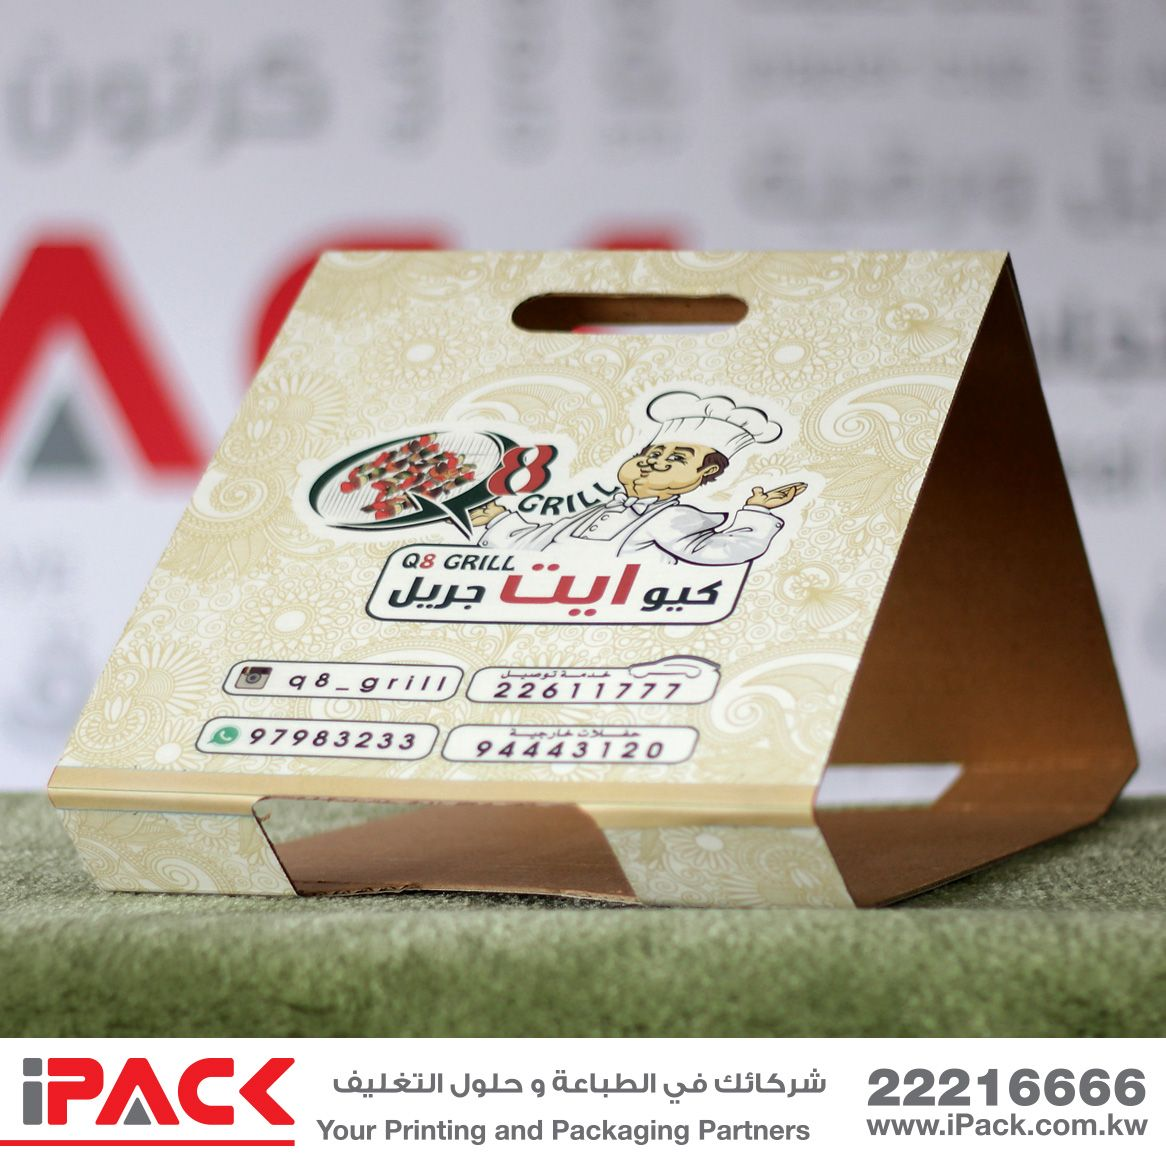 Custom Cake Boxes In Various Sizes علب كيك مطبوعة بقياسات مختلفة Custom Cakes Box Cake Takeout Container